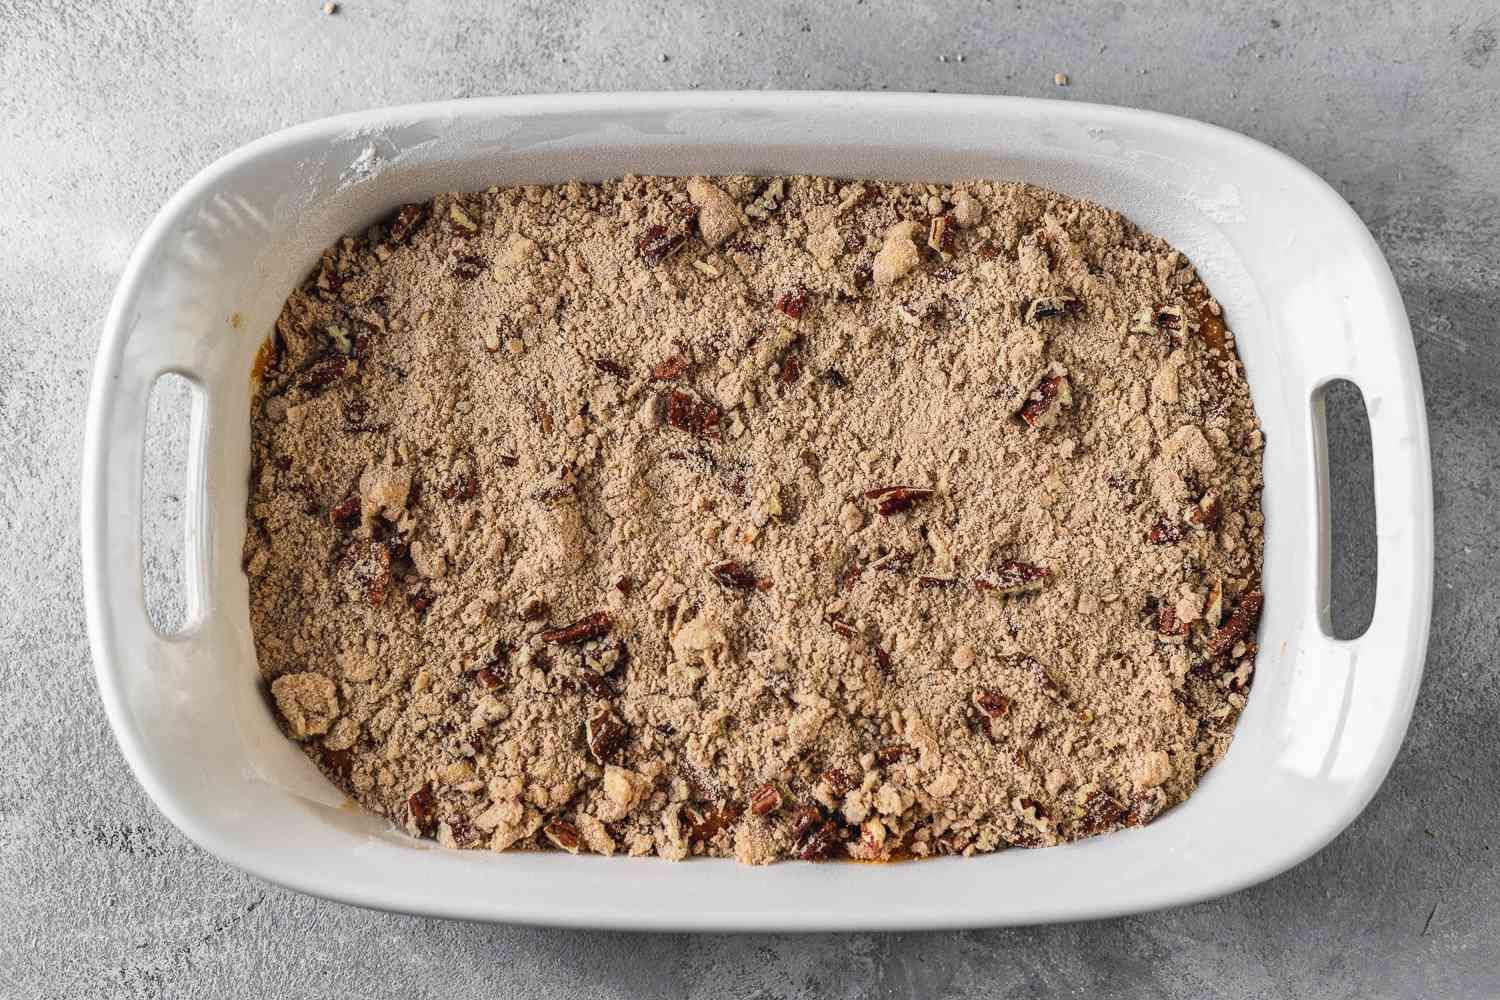 Pumpkin Bars With Streusel Topping in a baking pan